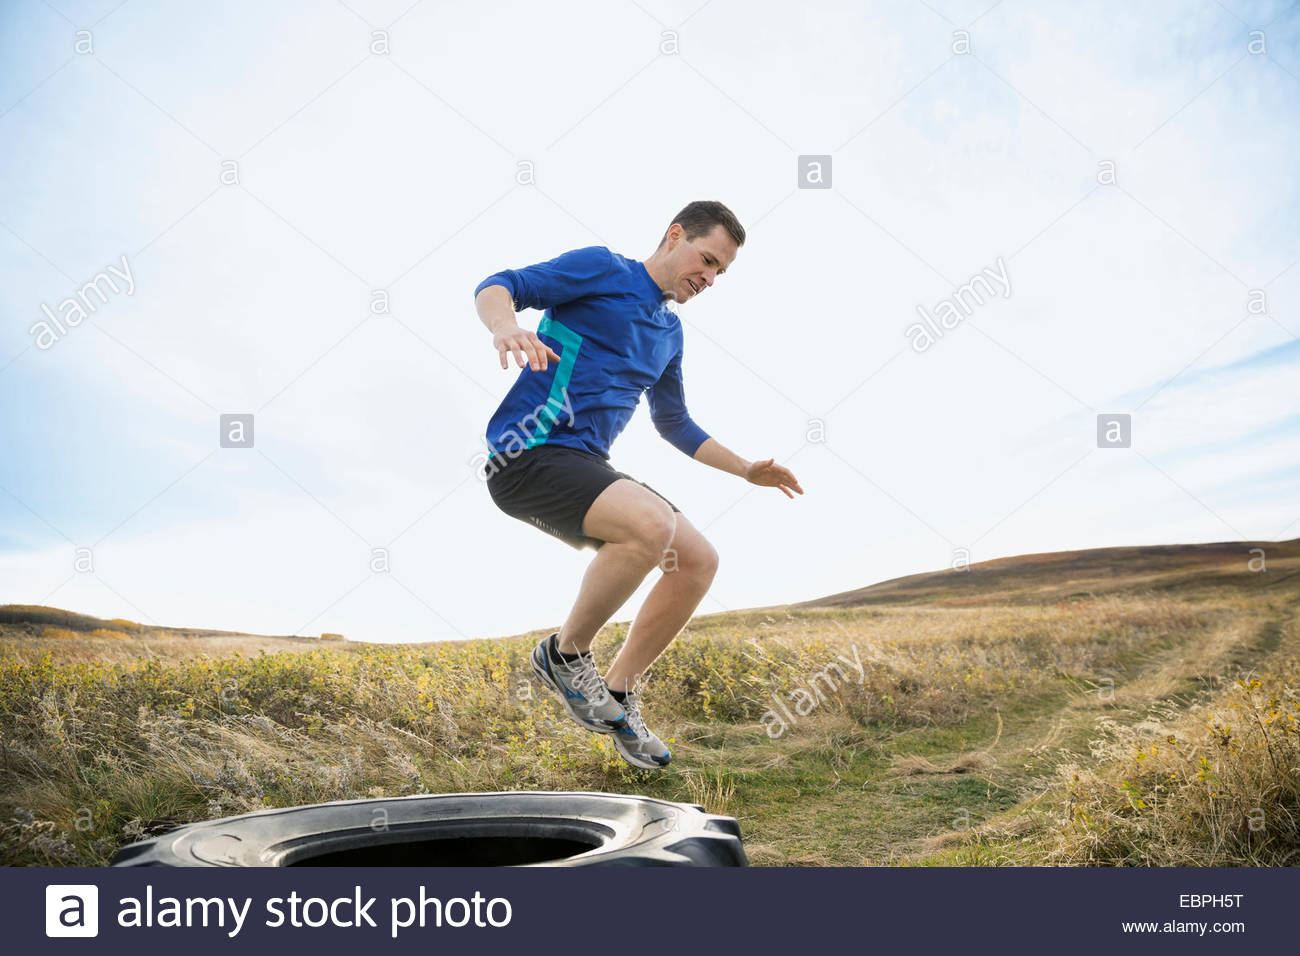 Man pneu crossfit dans sunny rural field Photo Stock